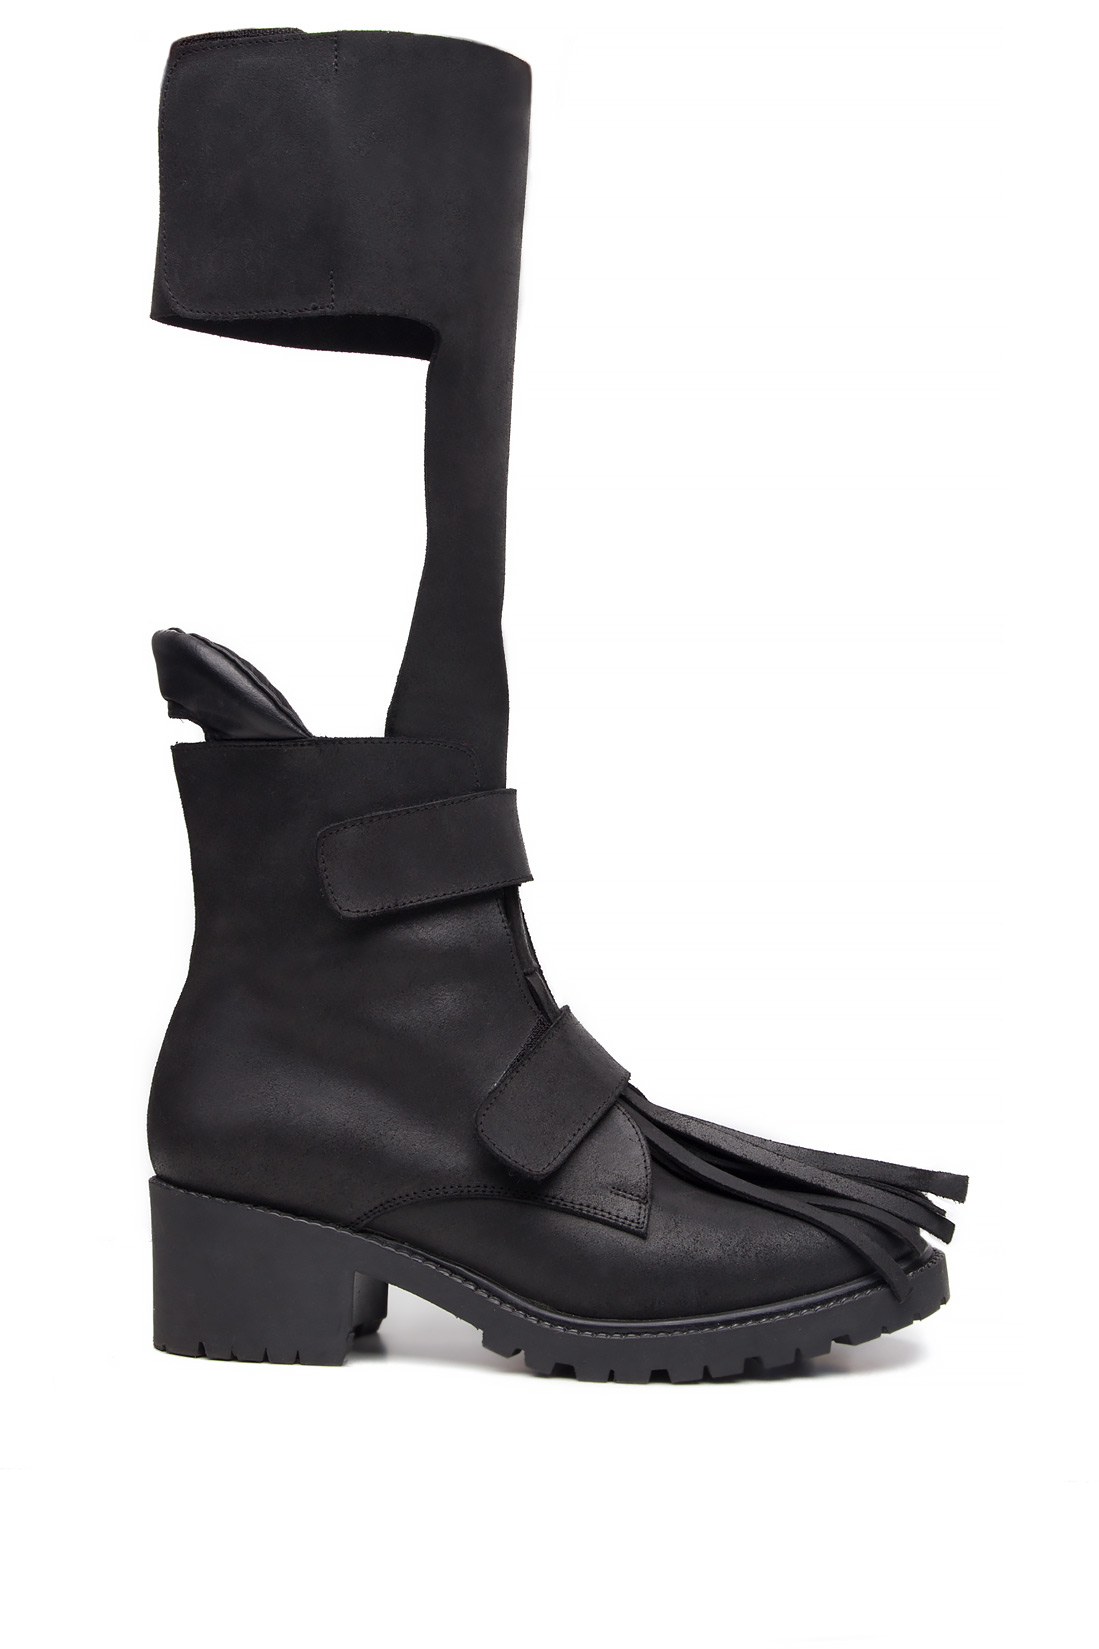 Fringed cutout leather ankle boots Mihaela Glavan  image 0